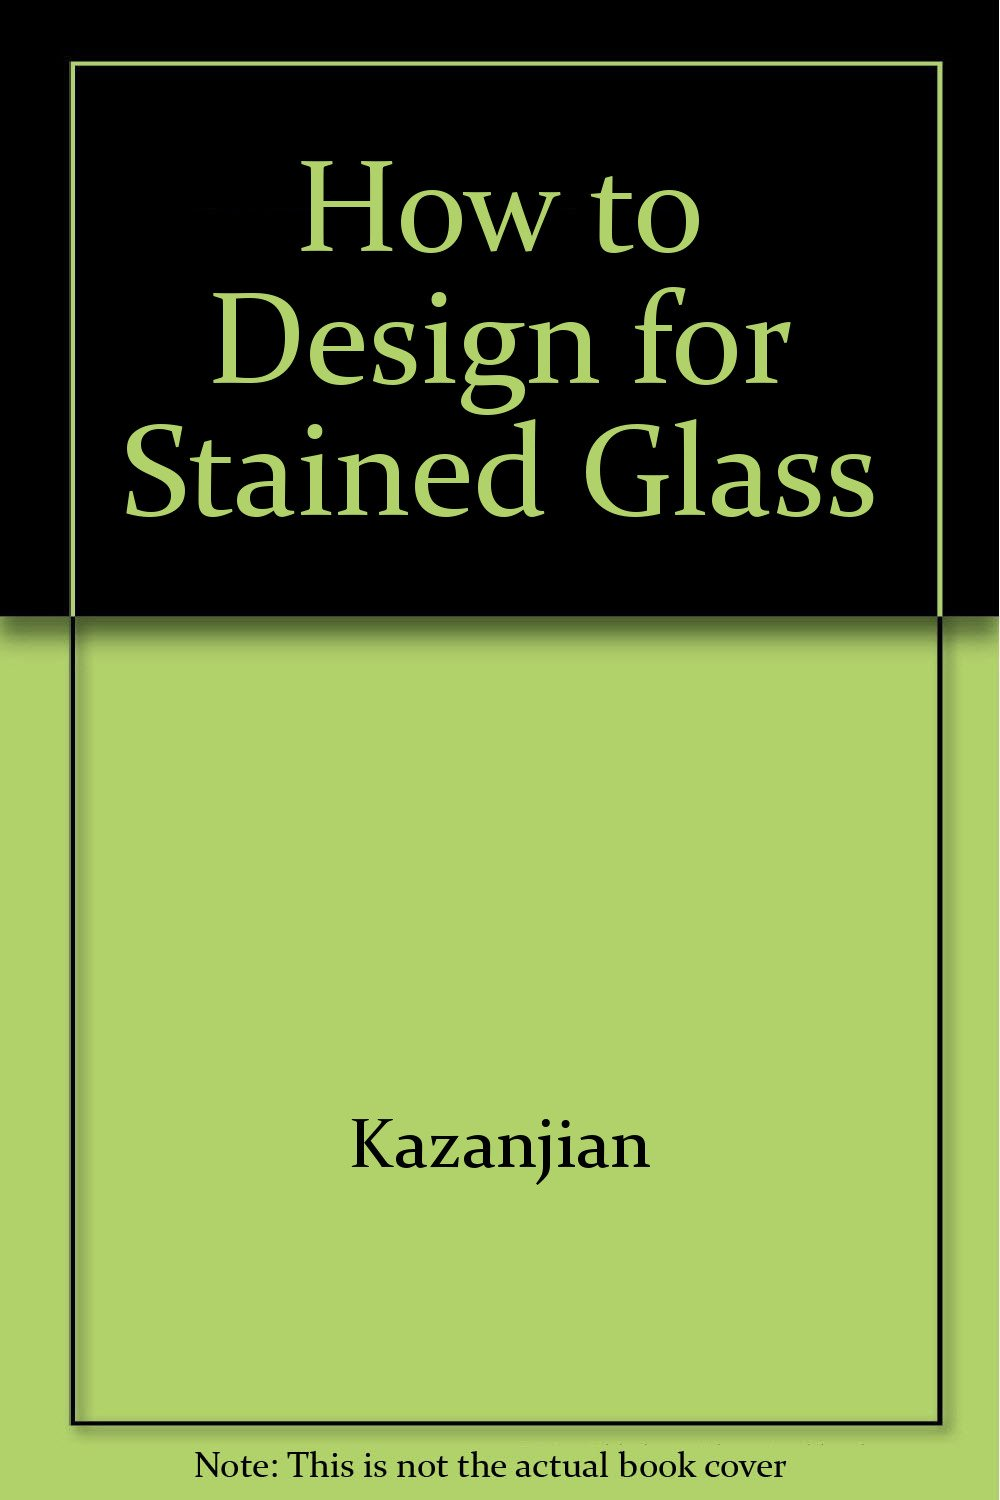 How to Design for Stained Glass